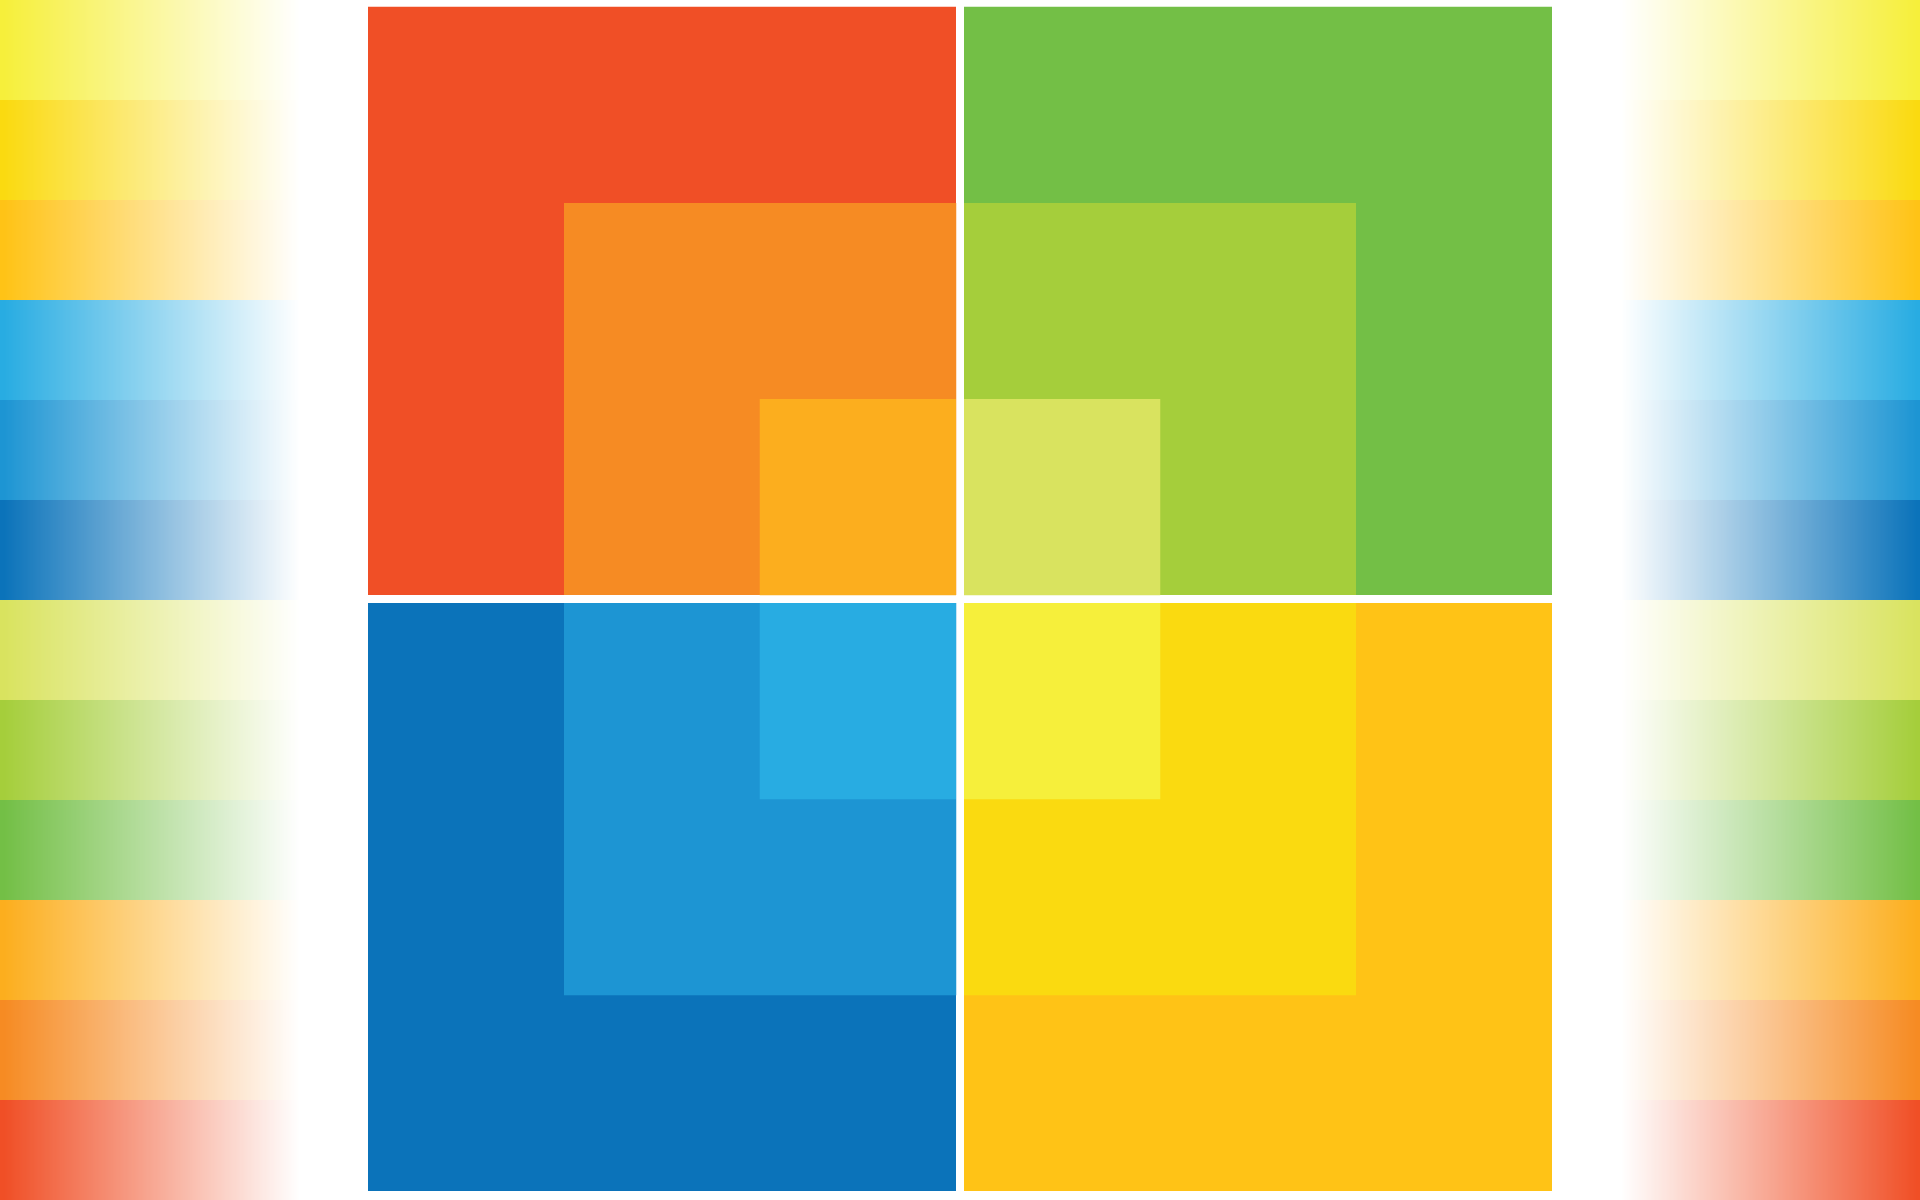 microsoft wallpapers photos and desktop backgrounds up to